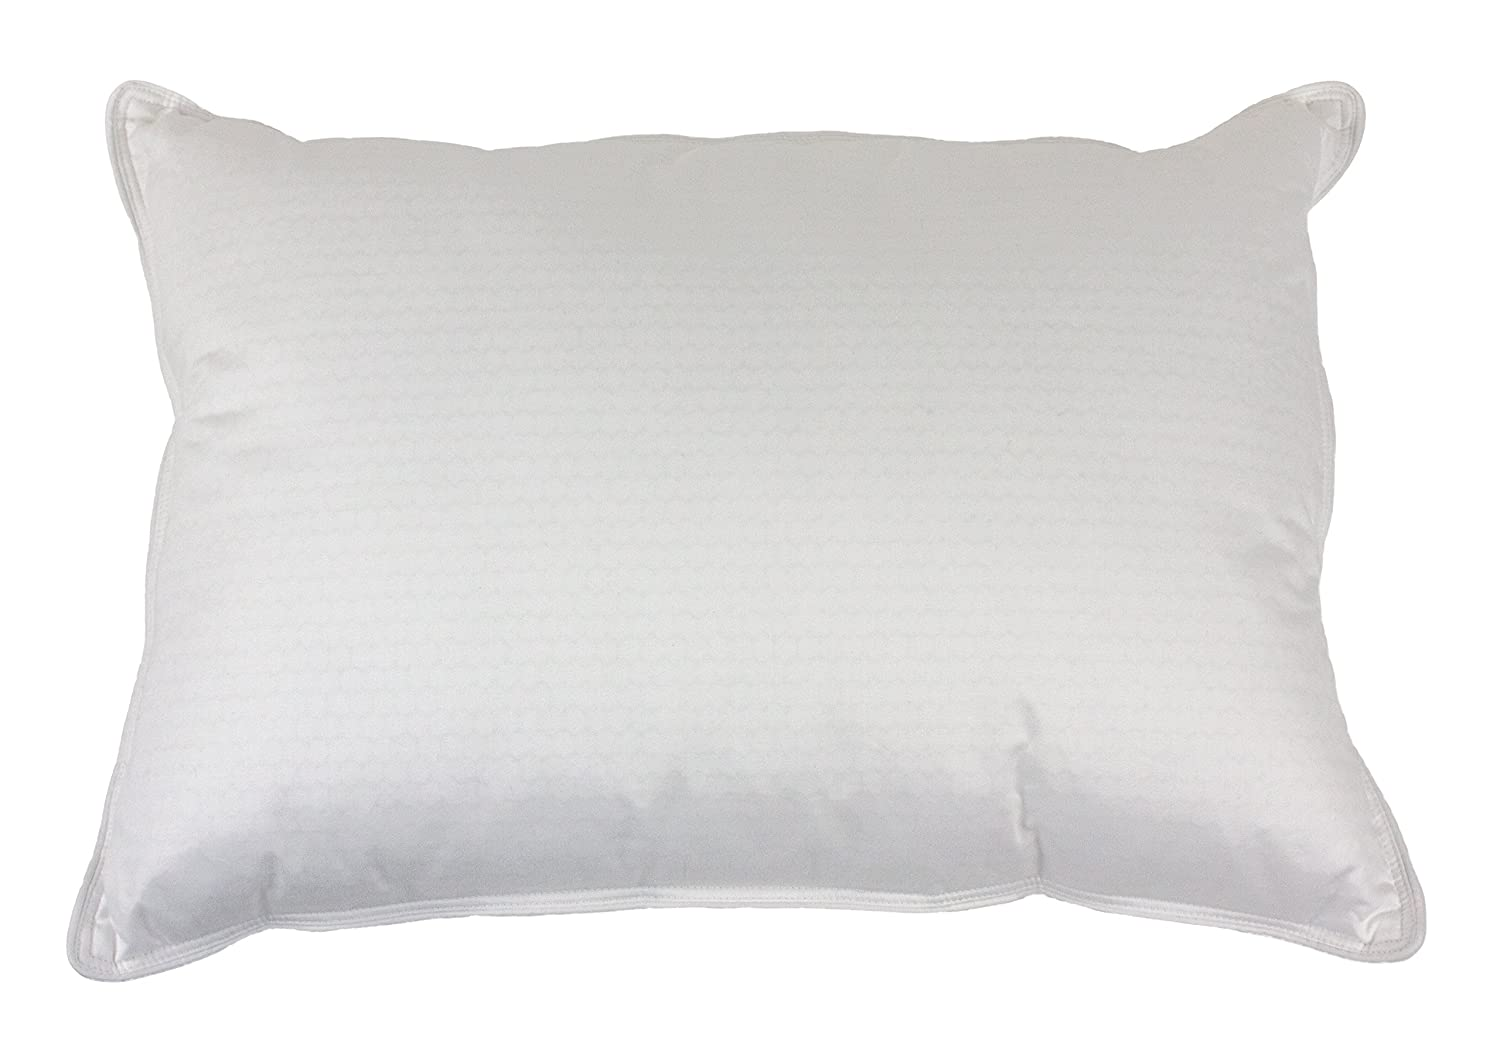 f7c76a0a17 Toddler Pillow for Hot or Sweaty Sleepers - 13 x 18 White 300TC Cotton  Sateen Features Outlast(R) Temperature Regulating Technology to Reduce  Overheating ...